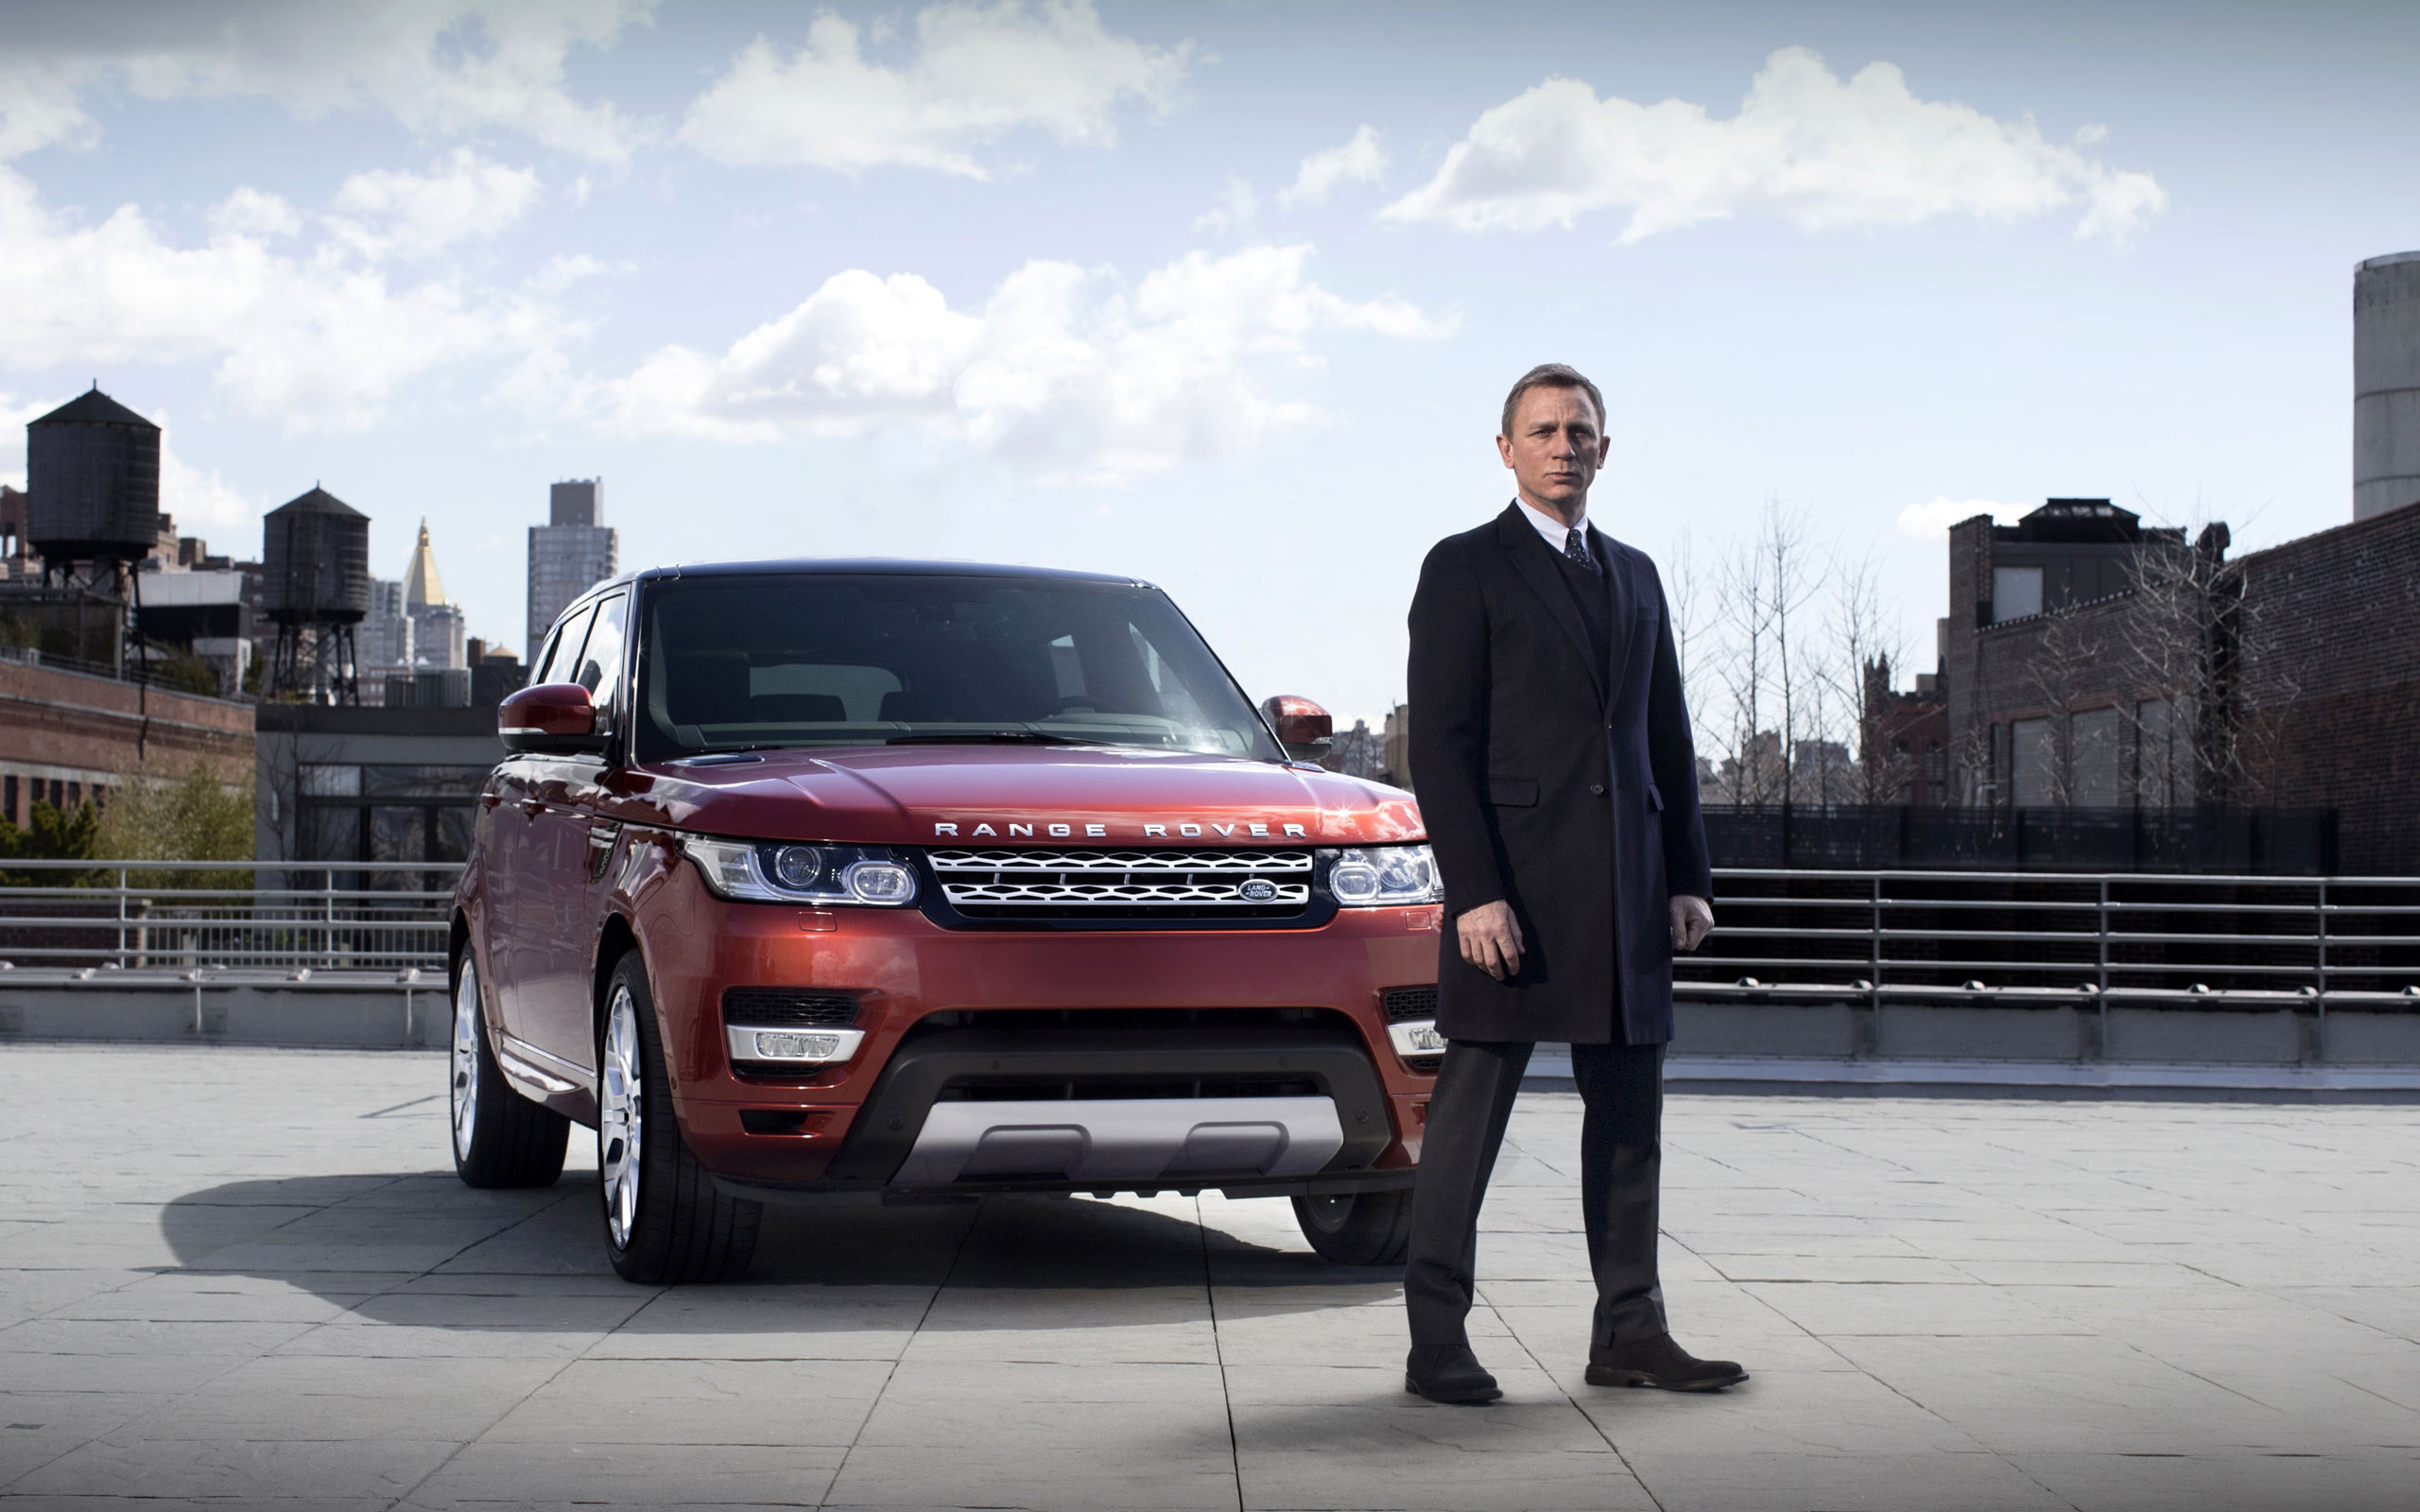 James Bond Range Rover Sport wide Car Pictures Wallpapers Backgrounds